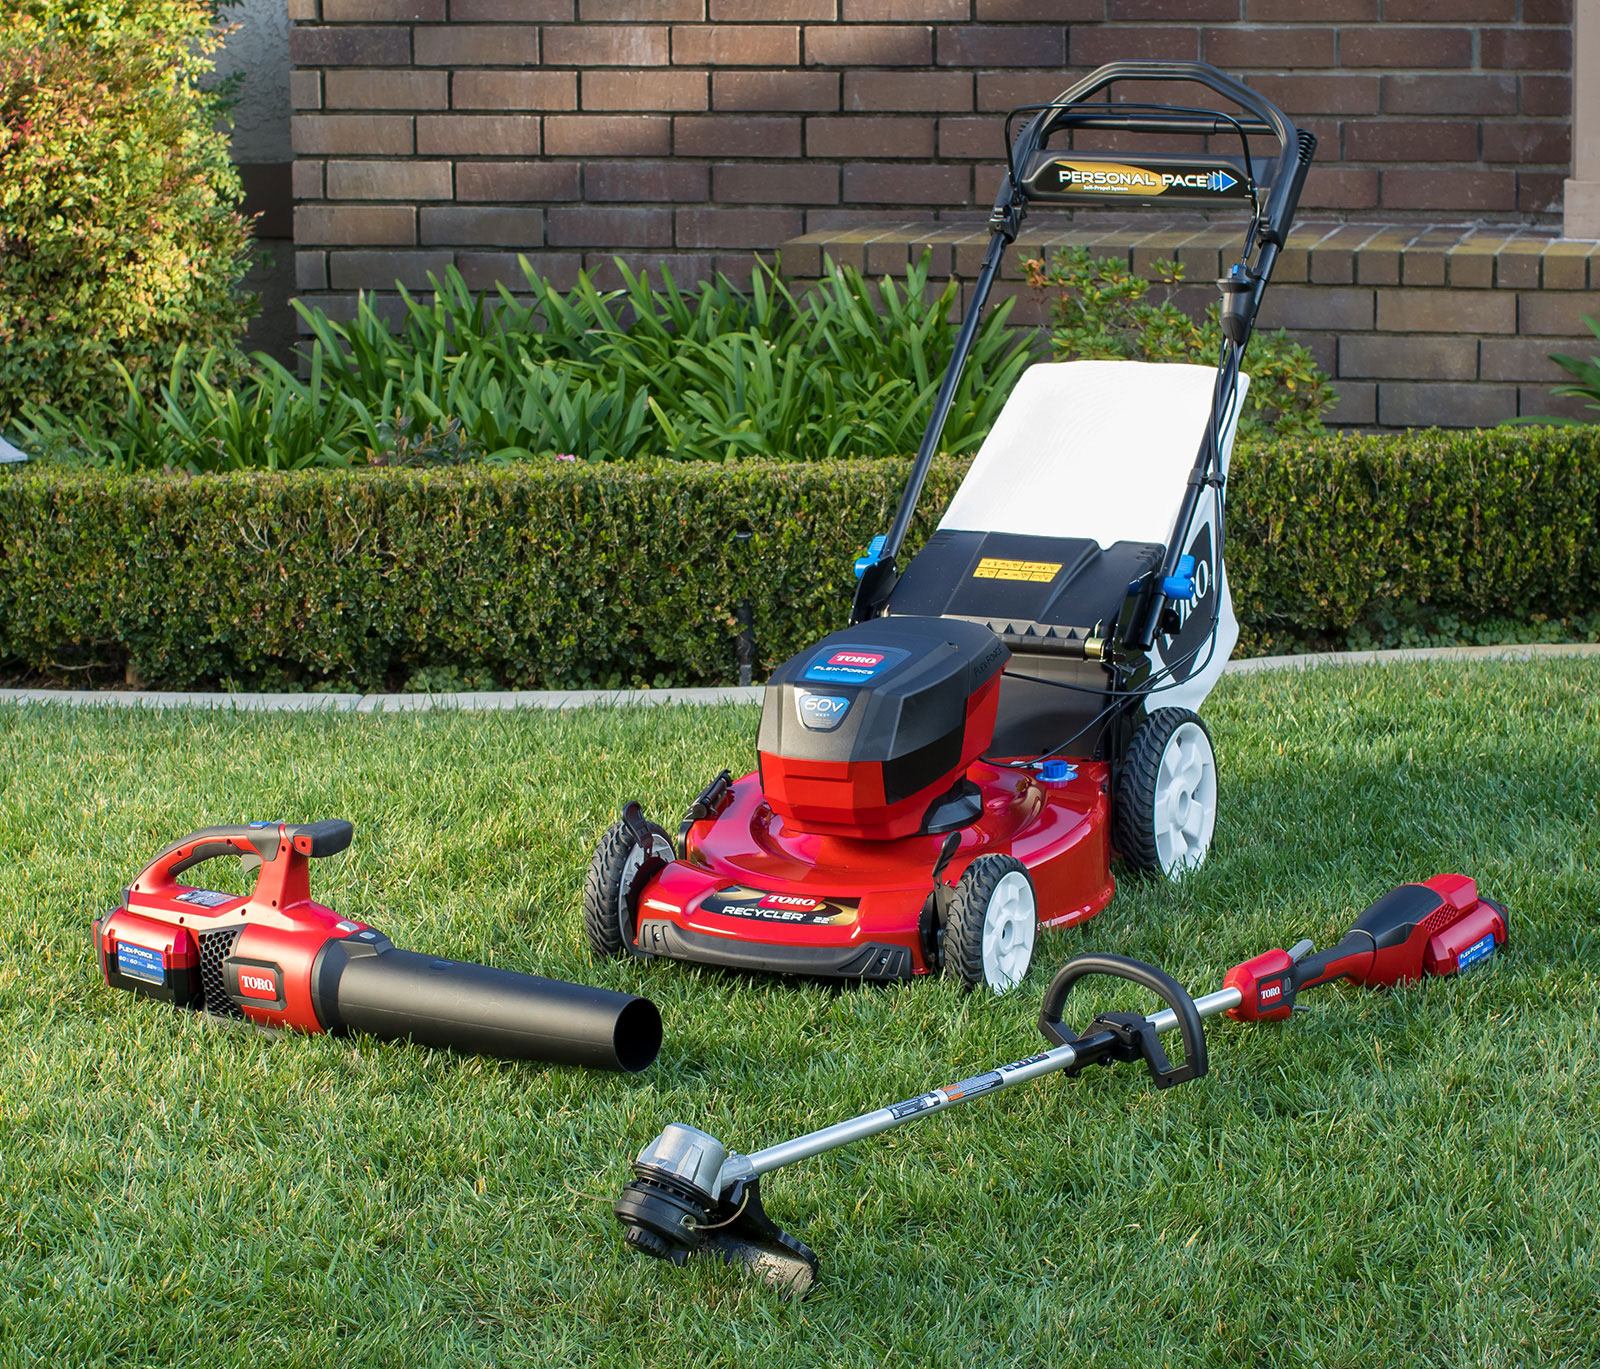 Home Lawn Care Equipment Mowers Snow Blowers Lawn Tractors Yard Tools Toro